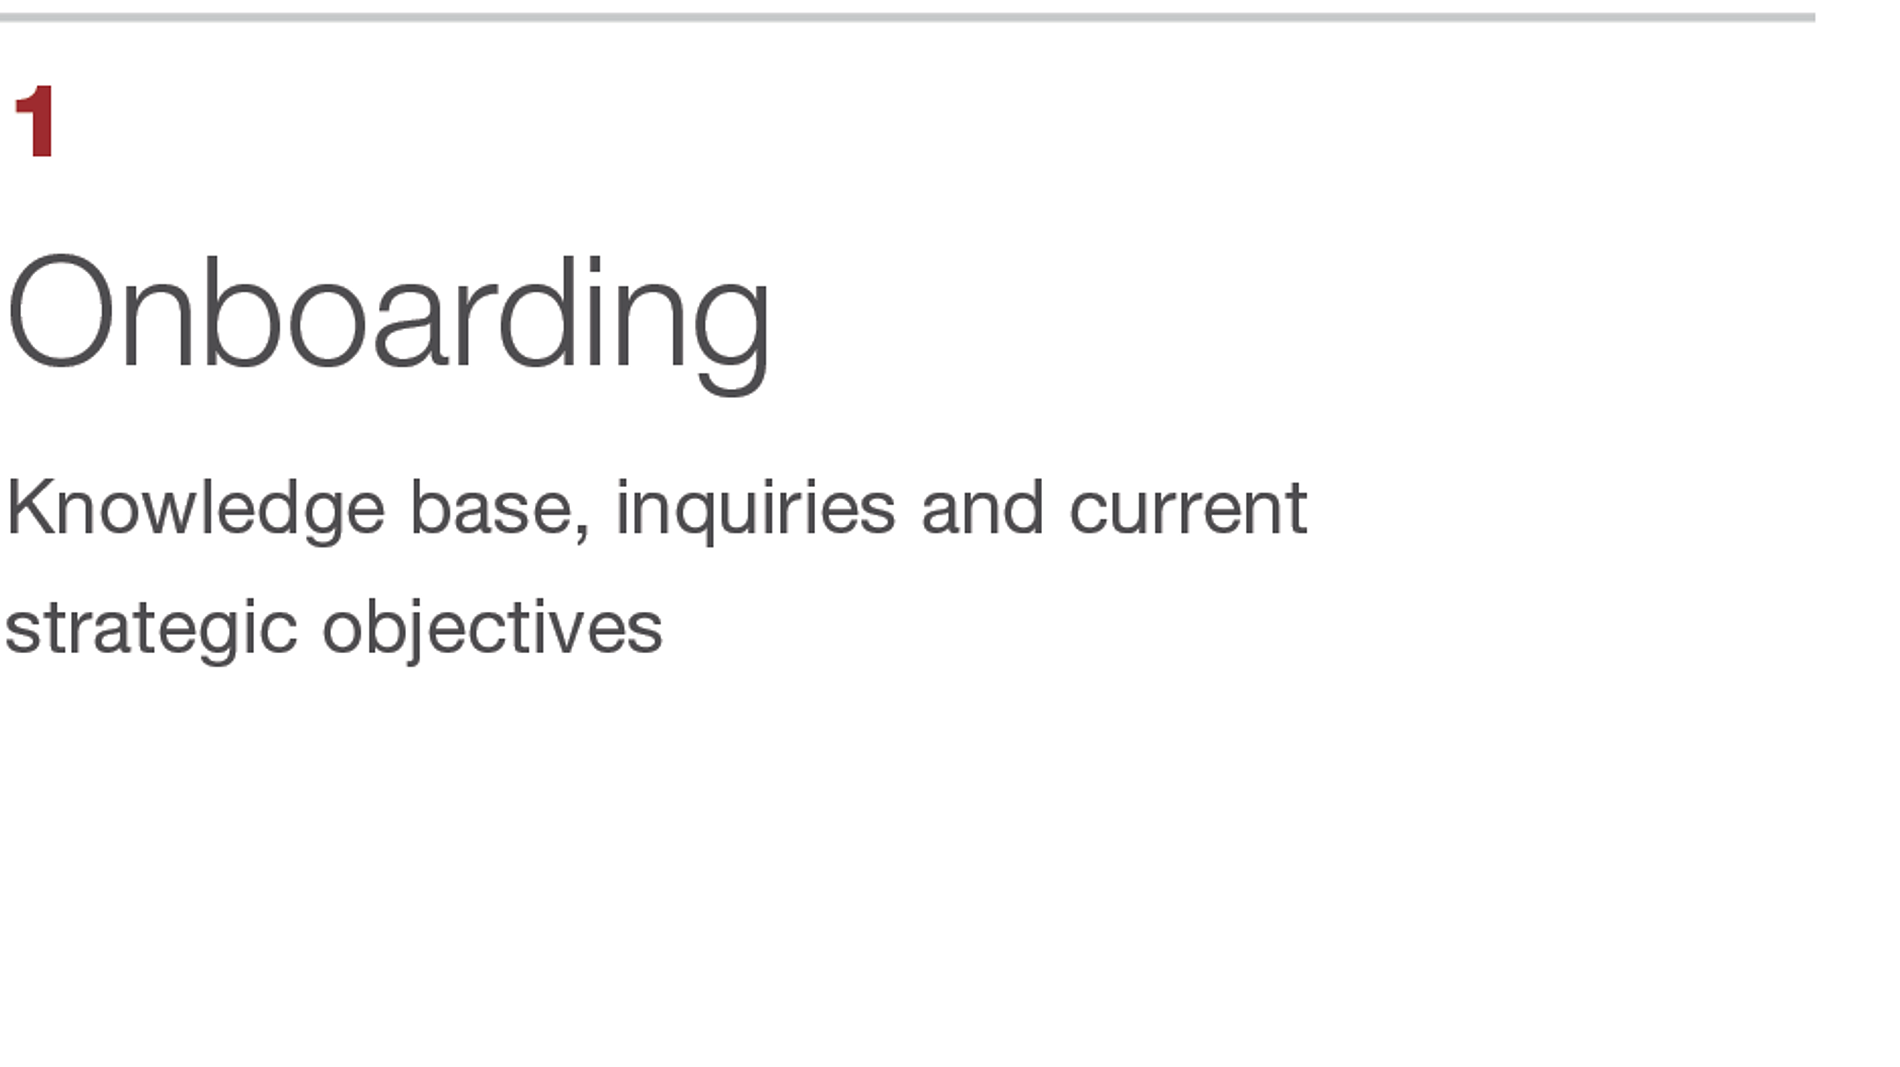 Onboarding. Knowledge base, inquiries and current strategic objectives